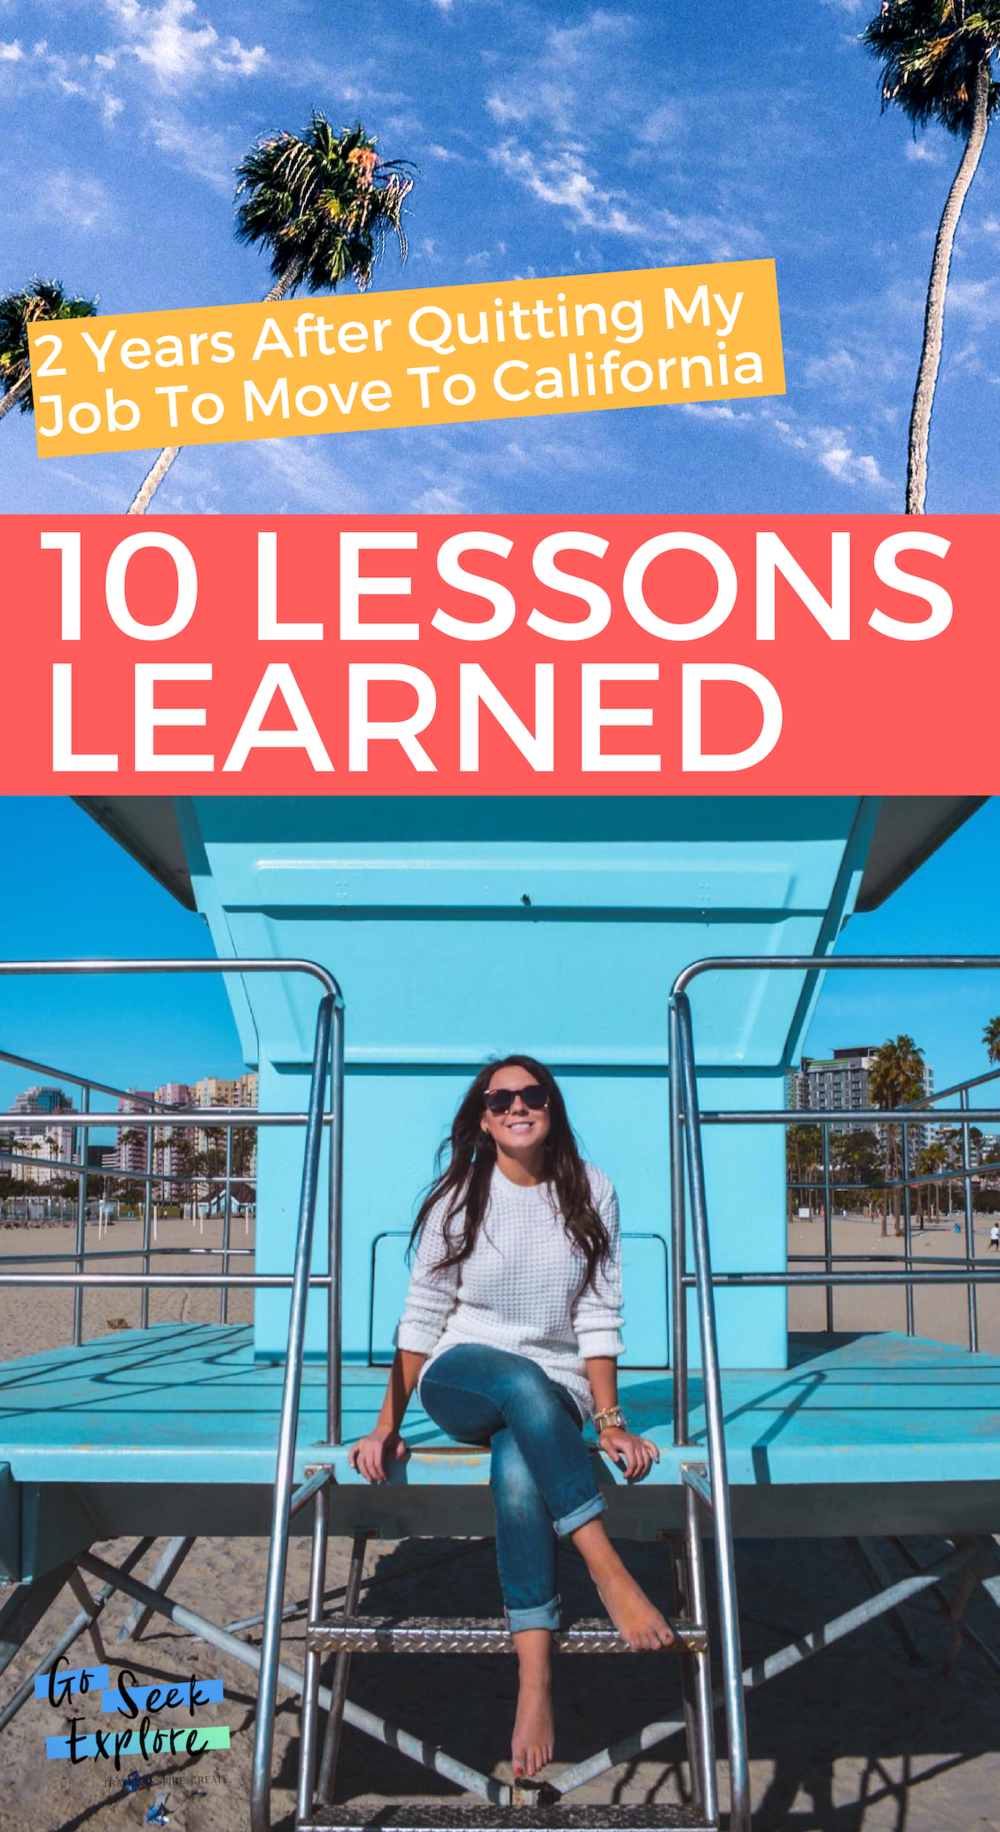 2 years ago I quit my job and moved to California. Here are 10 lessons I've learned from working online, traveling, and how to afford the cost of living in Southern California, one of the most expensive parts of the US. / goseekexplore.com